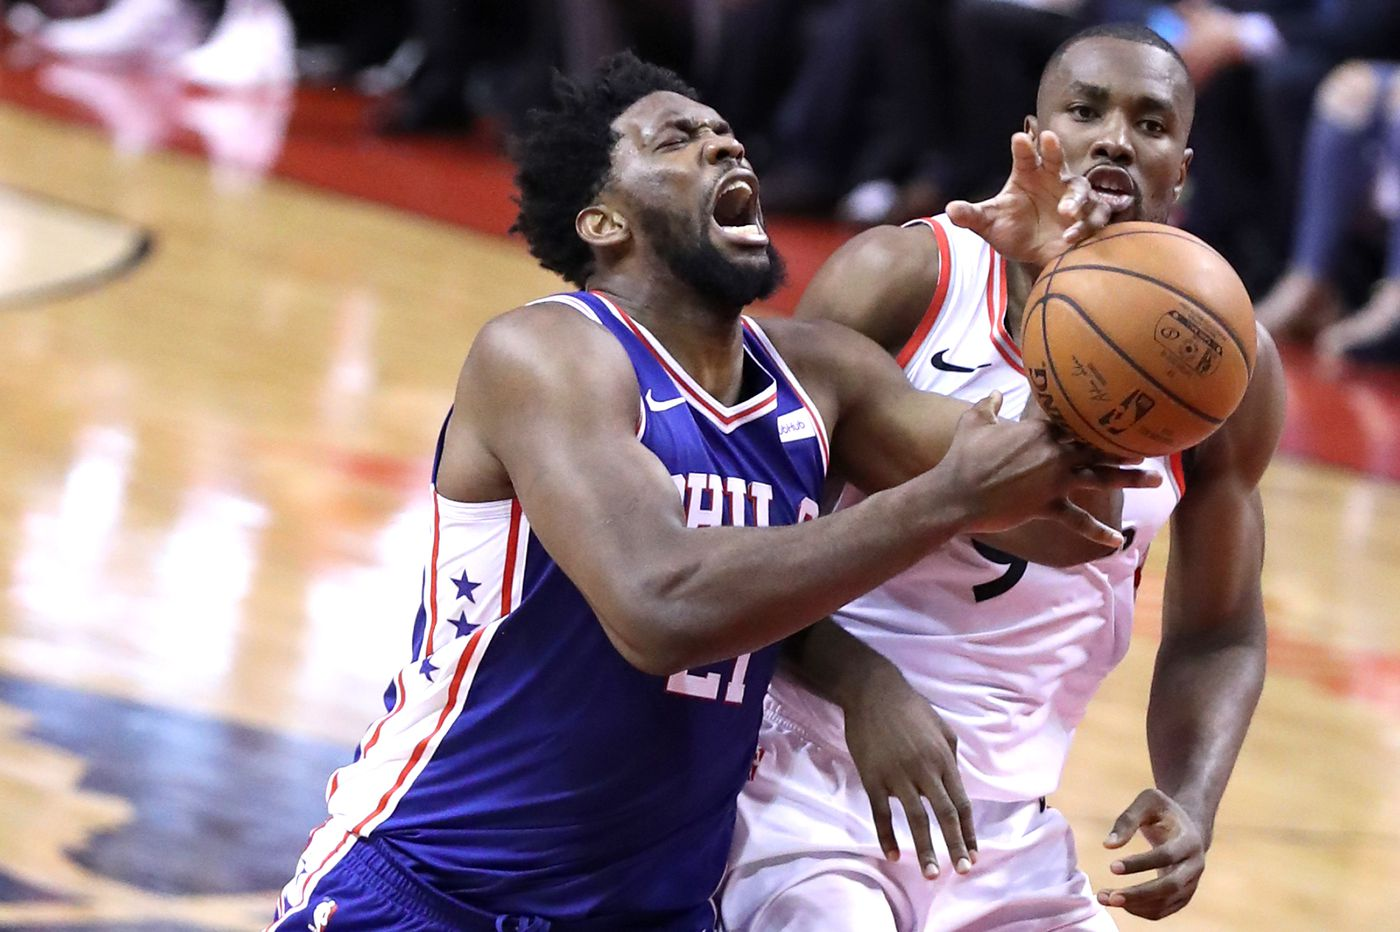 76ers, Raptors meet with series tied 1-1